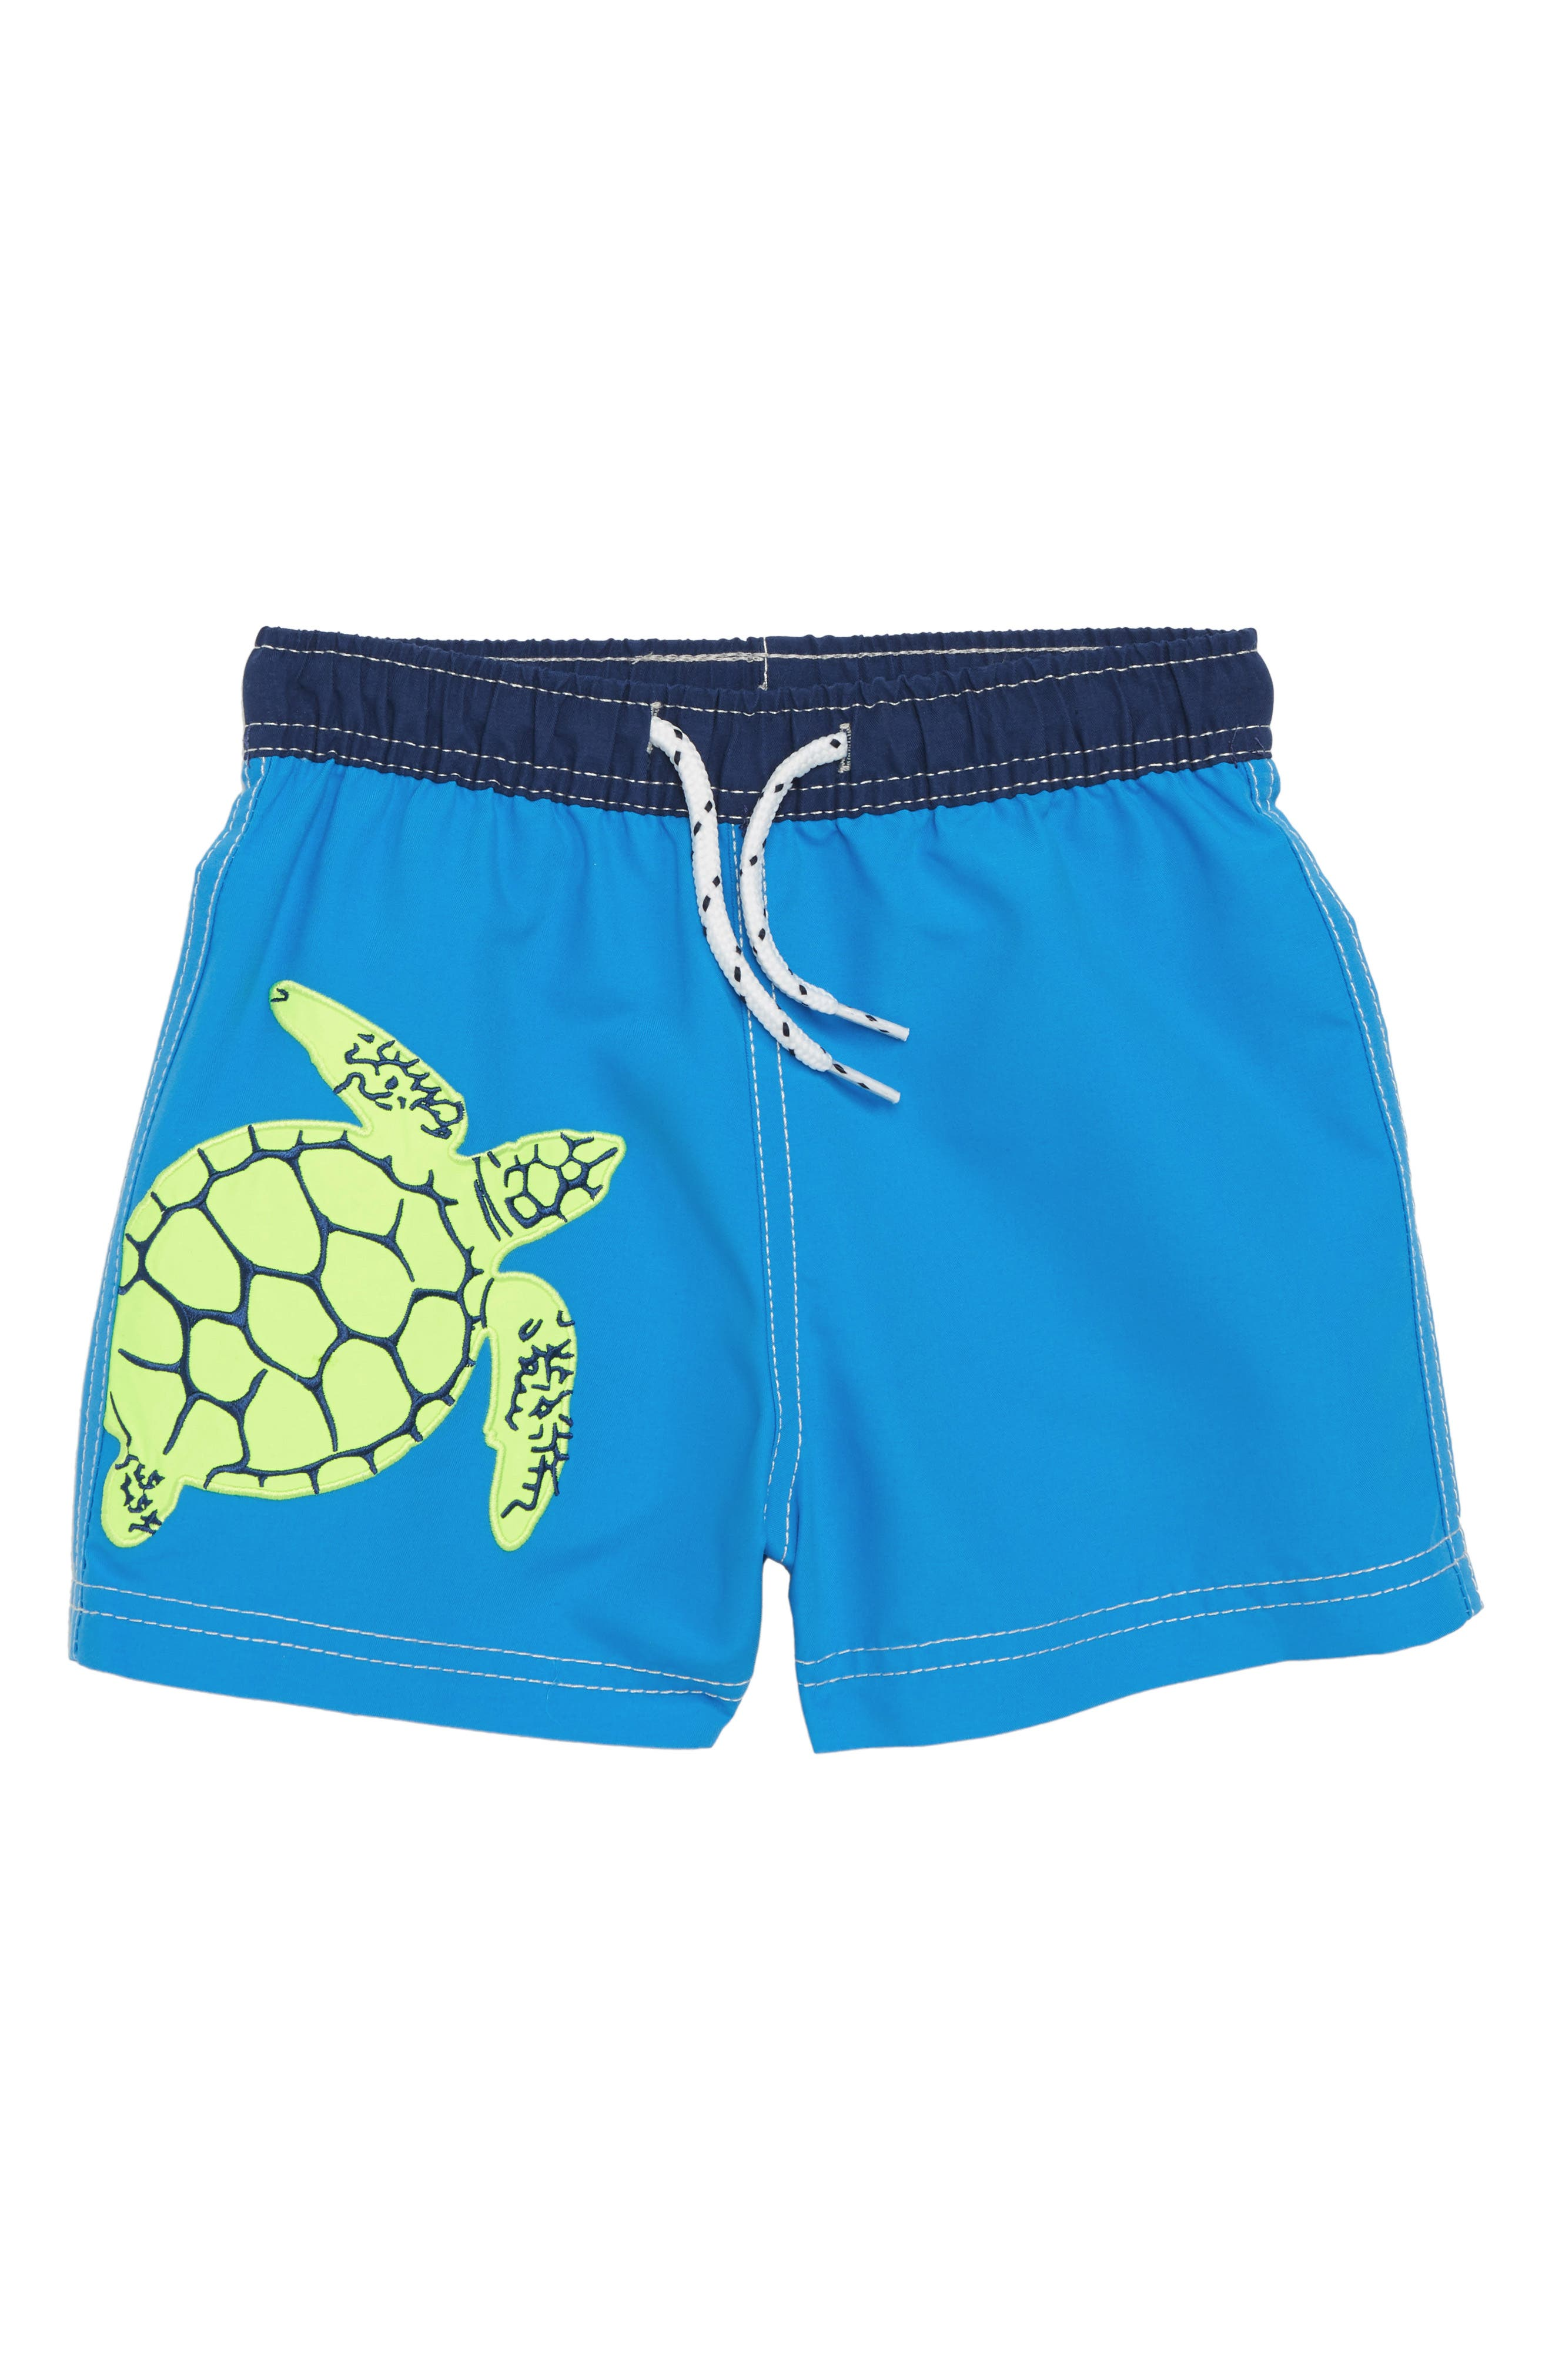 Embroidered Turtle Swim Trunks,                             Main thumbnail 1, color,                             400